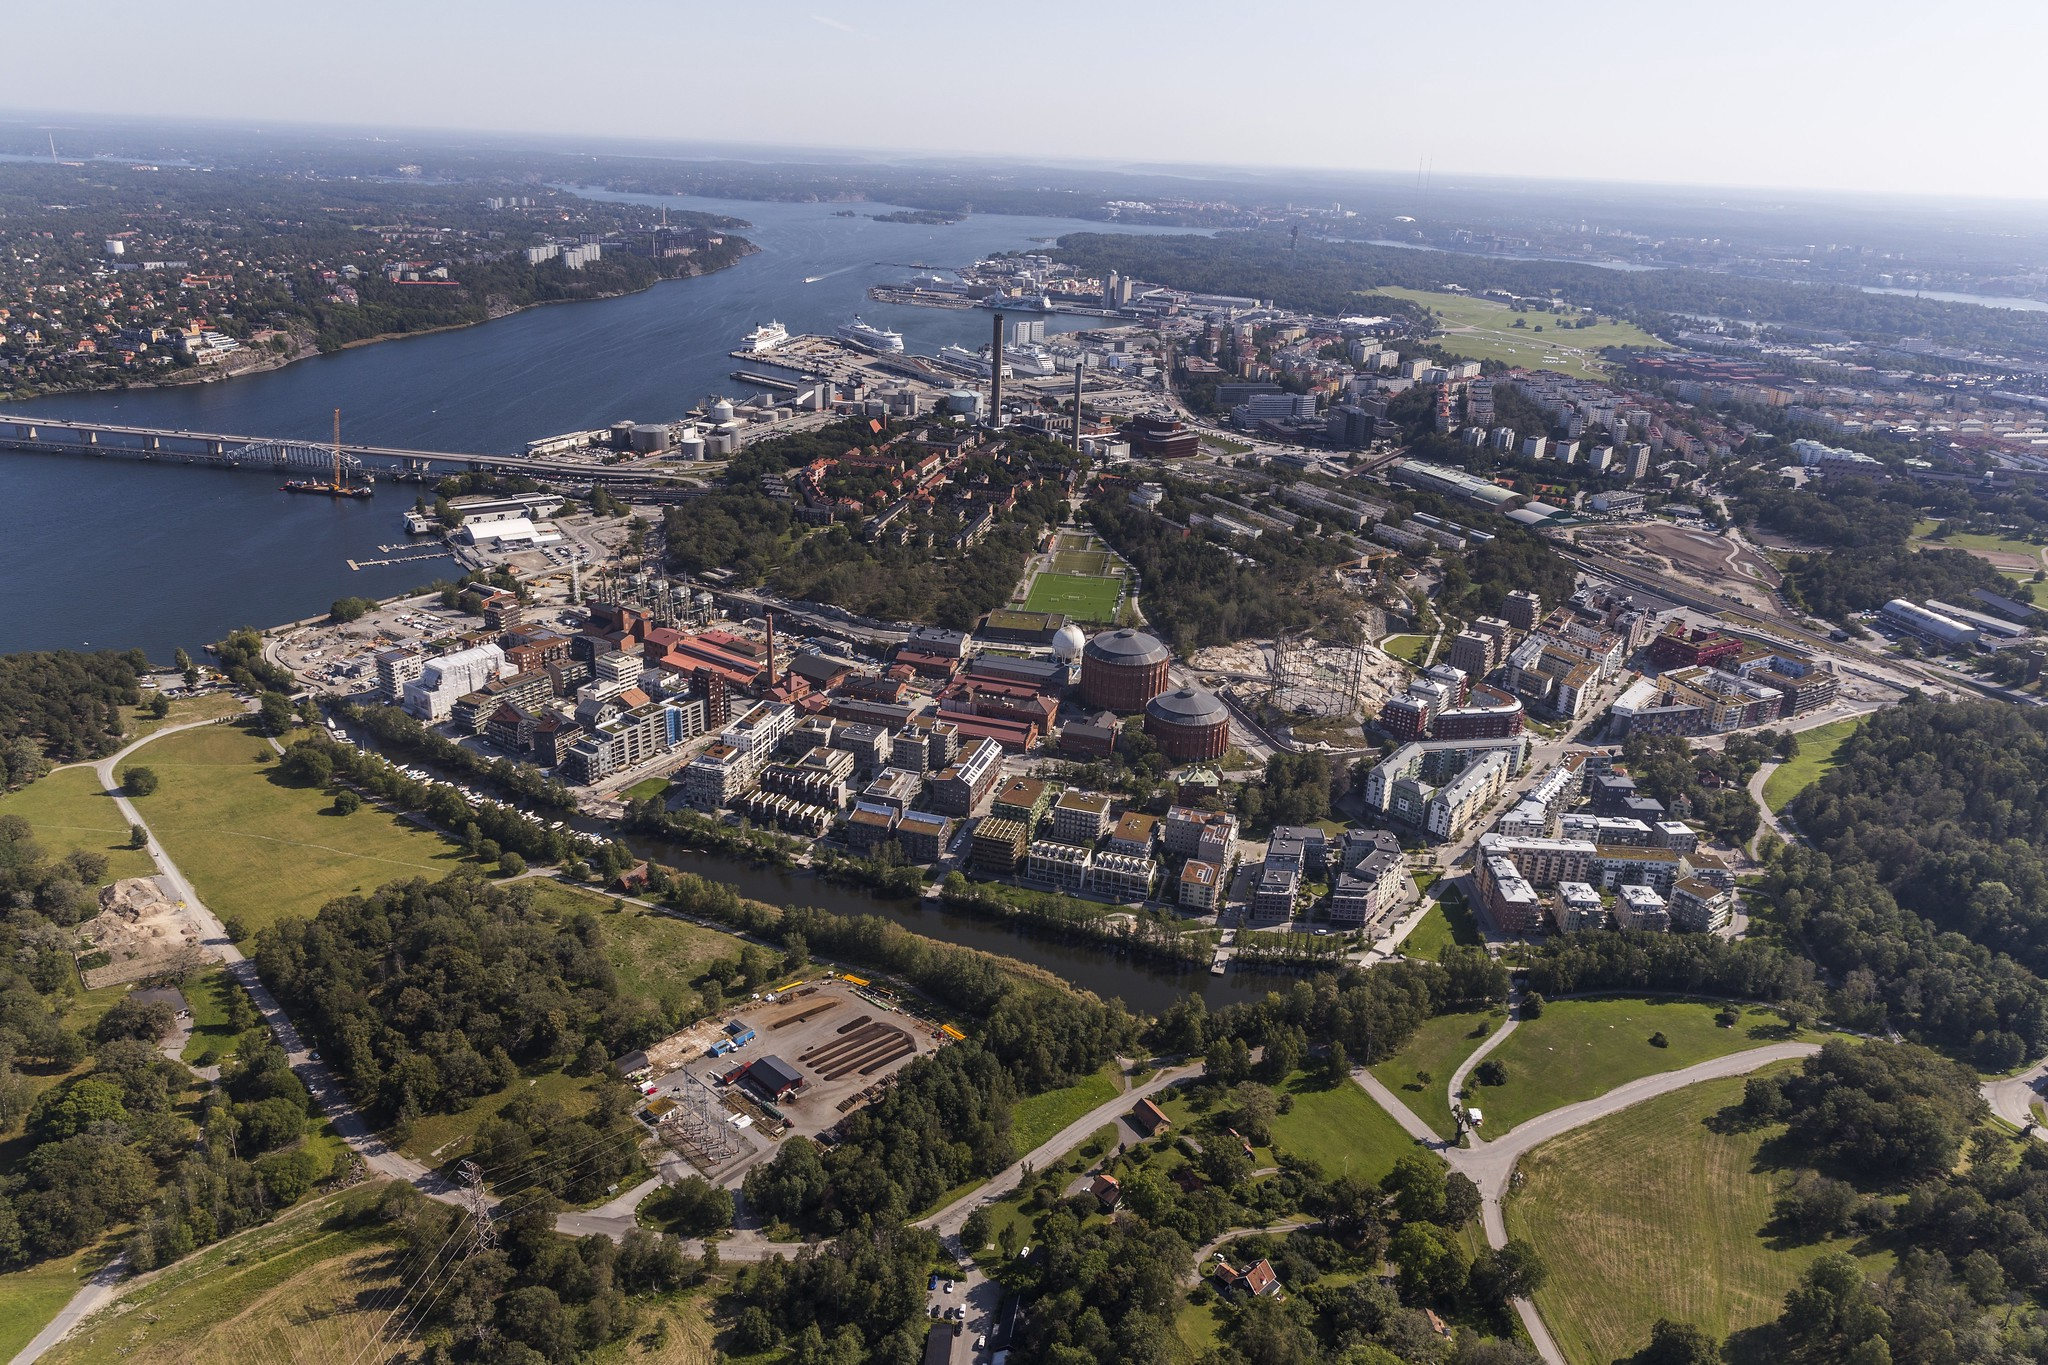 An aerial view of the Royal Seaport development in Stockholm, looking south.